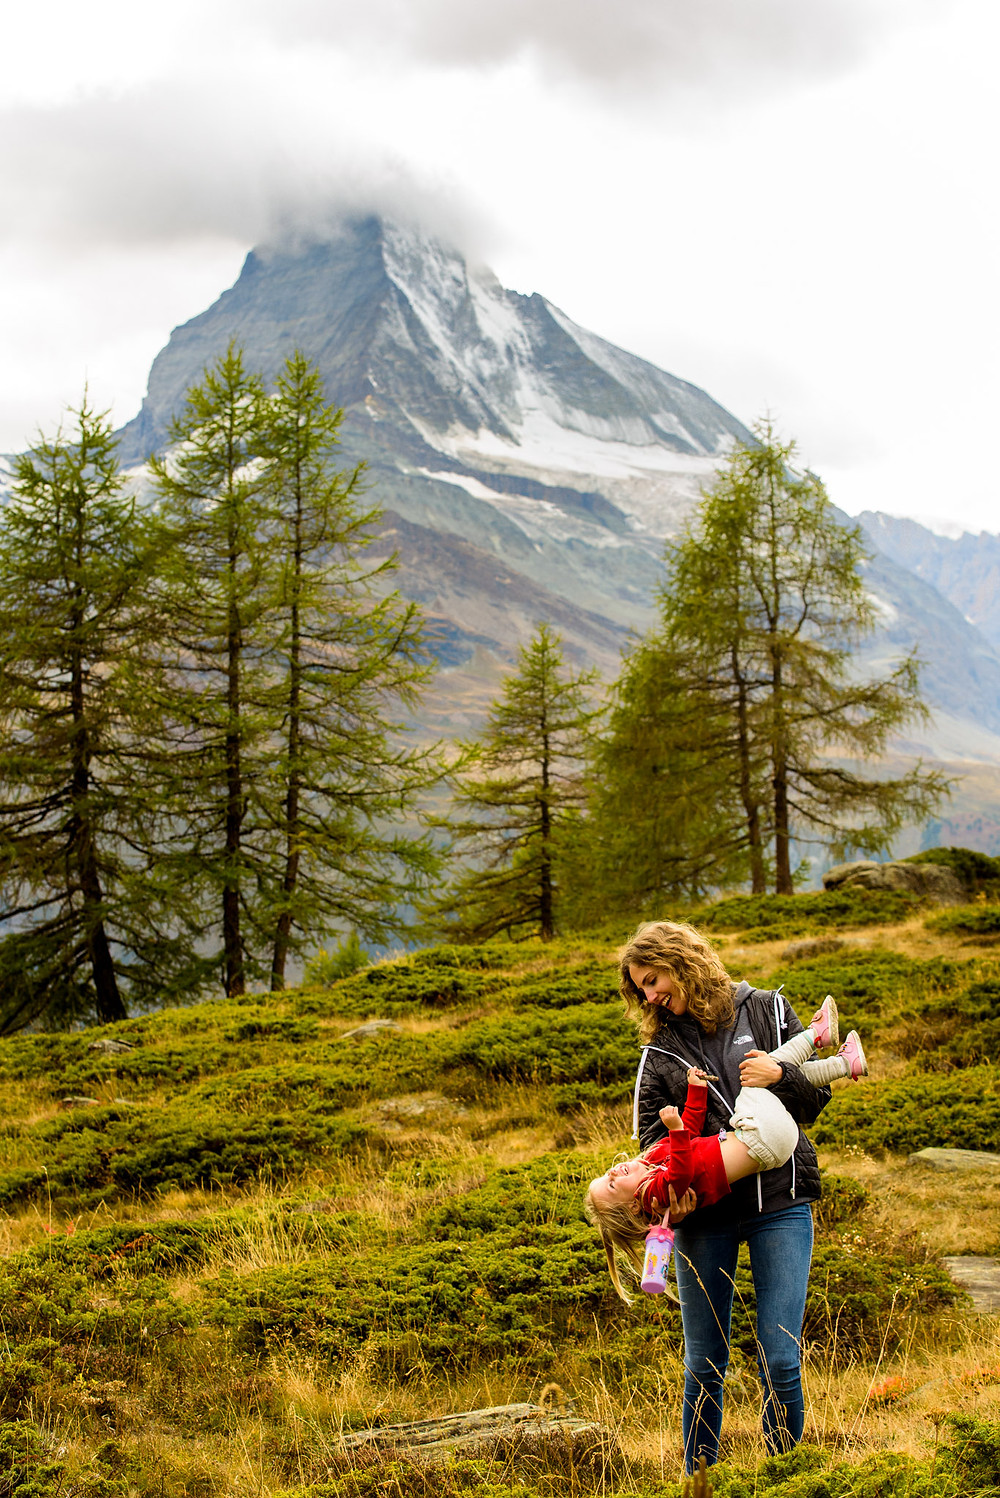 Me holding Skye in the mountains